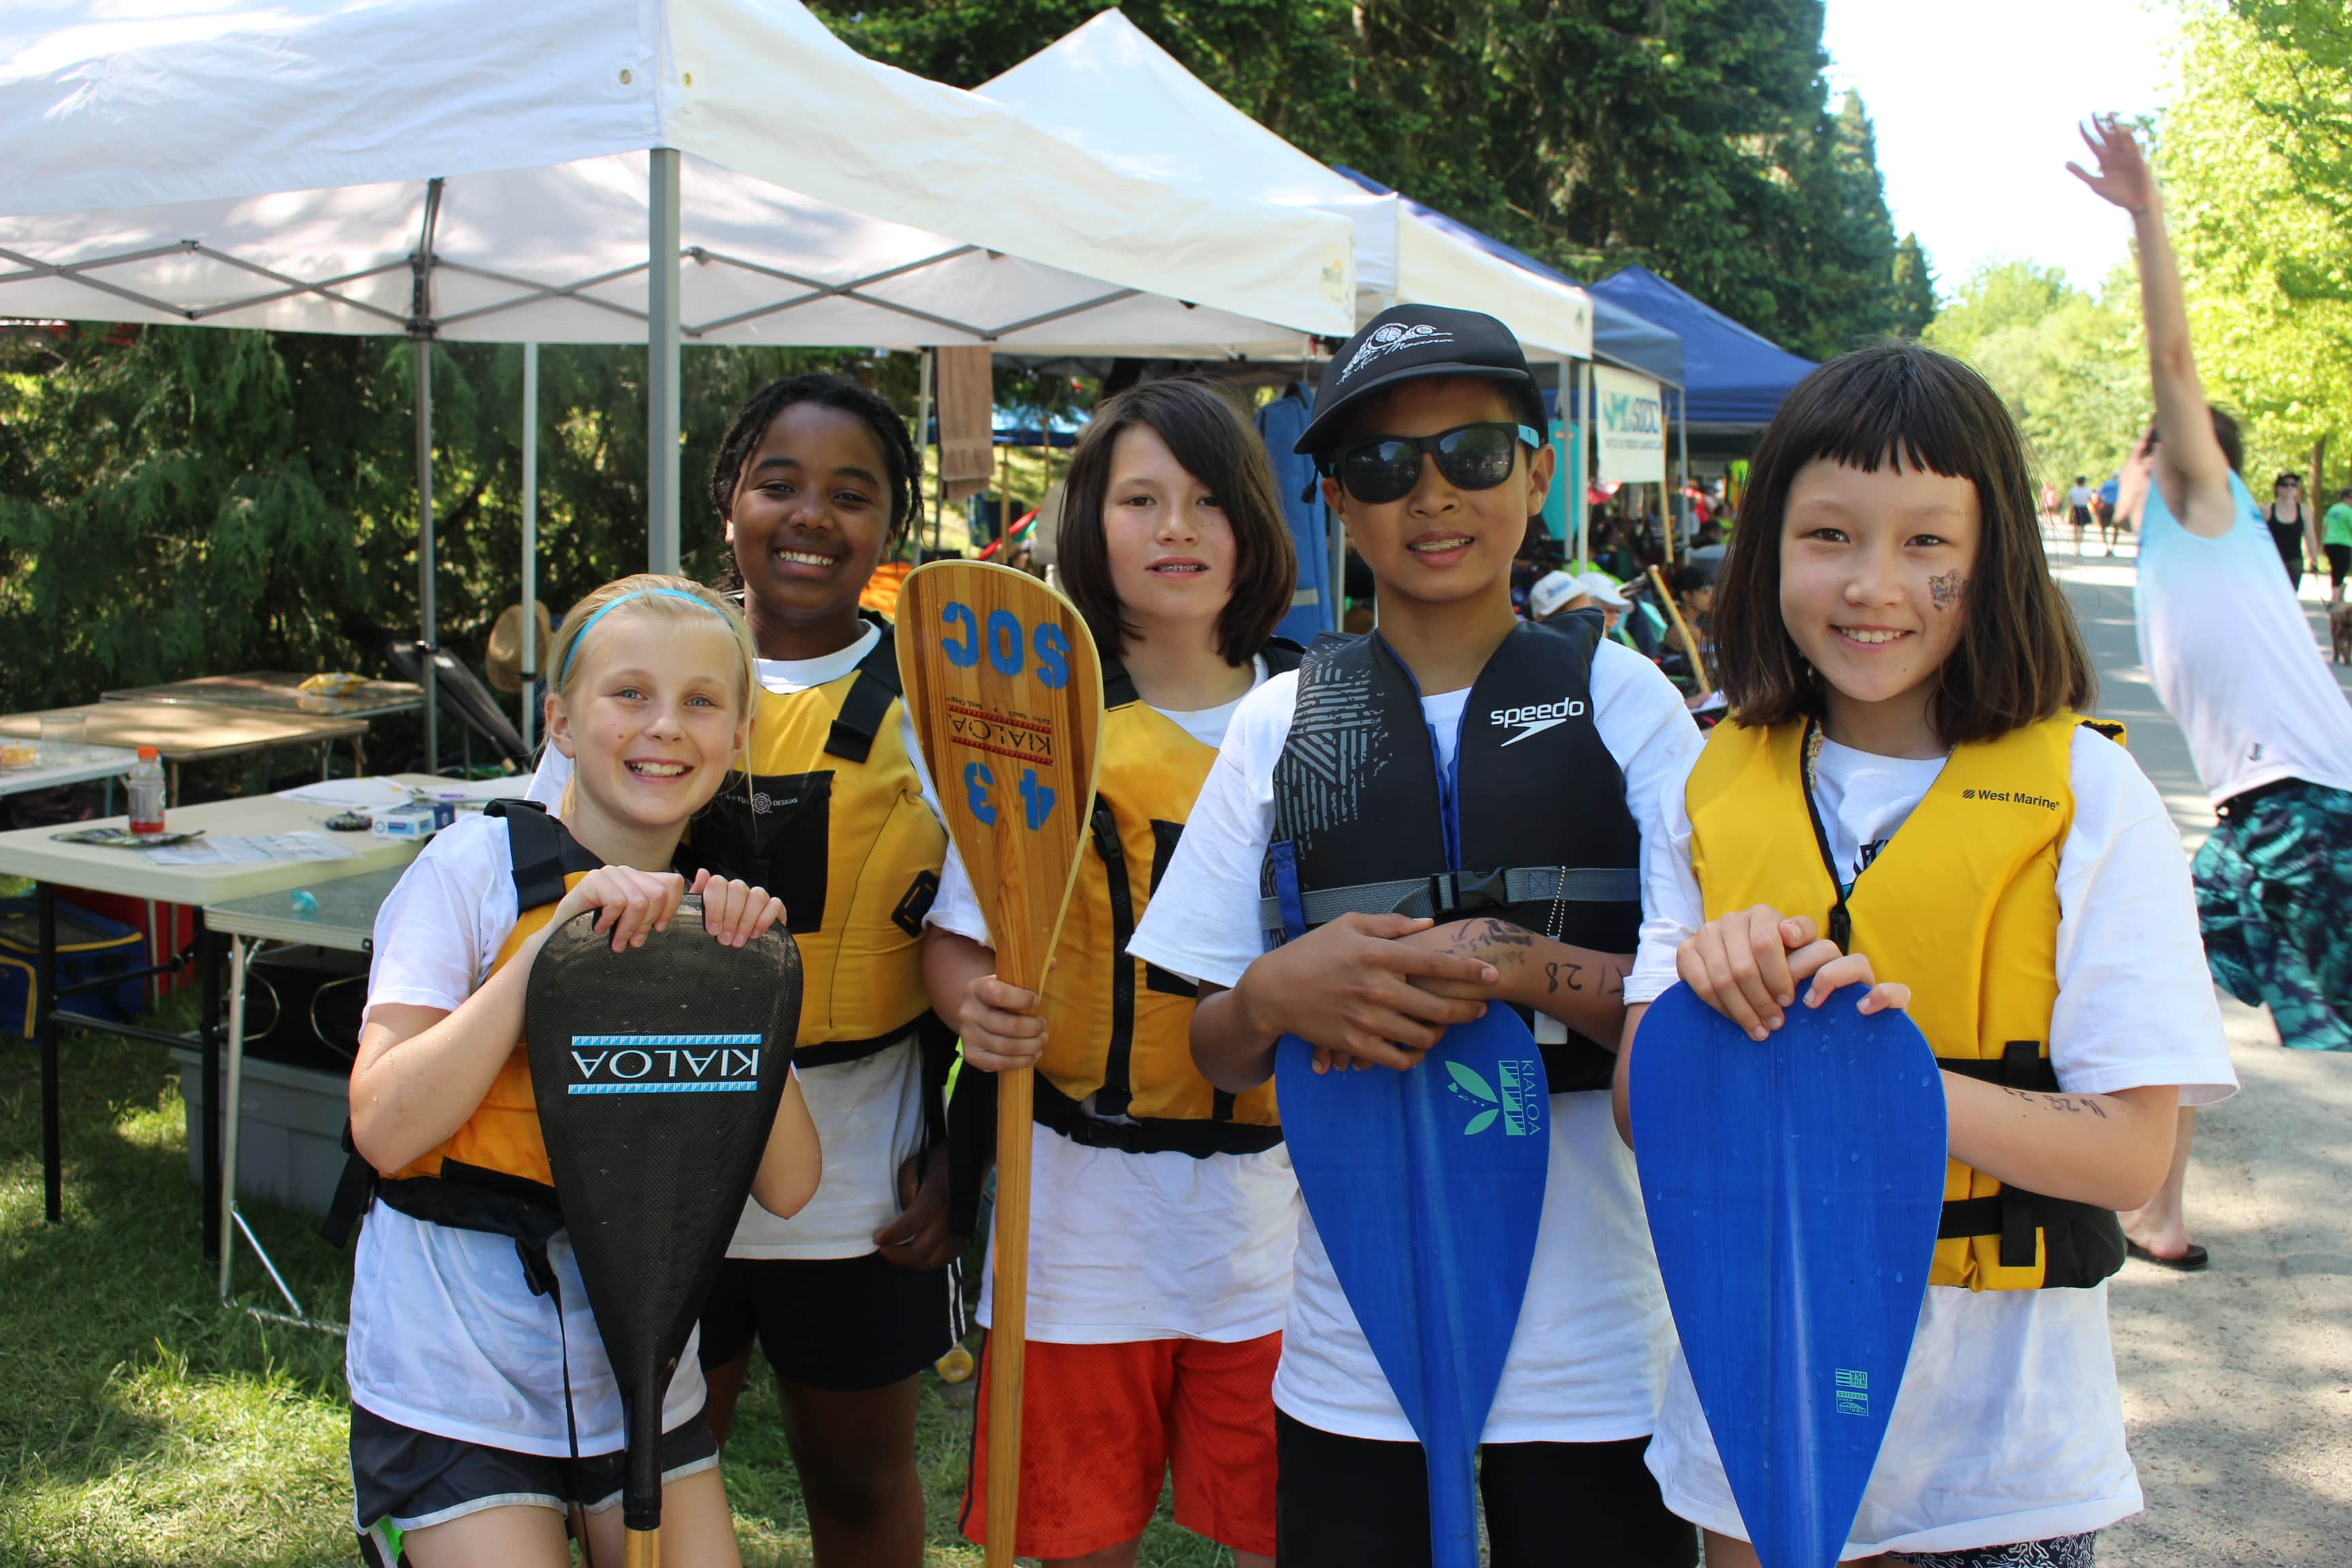 a few of our keiki (children) paddlers at green lake